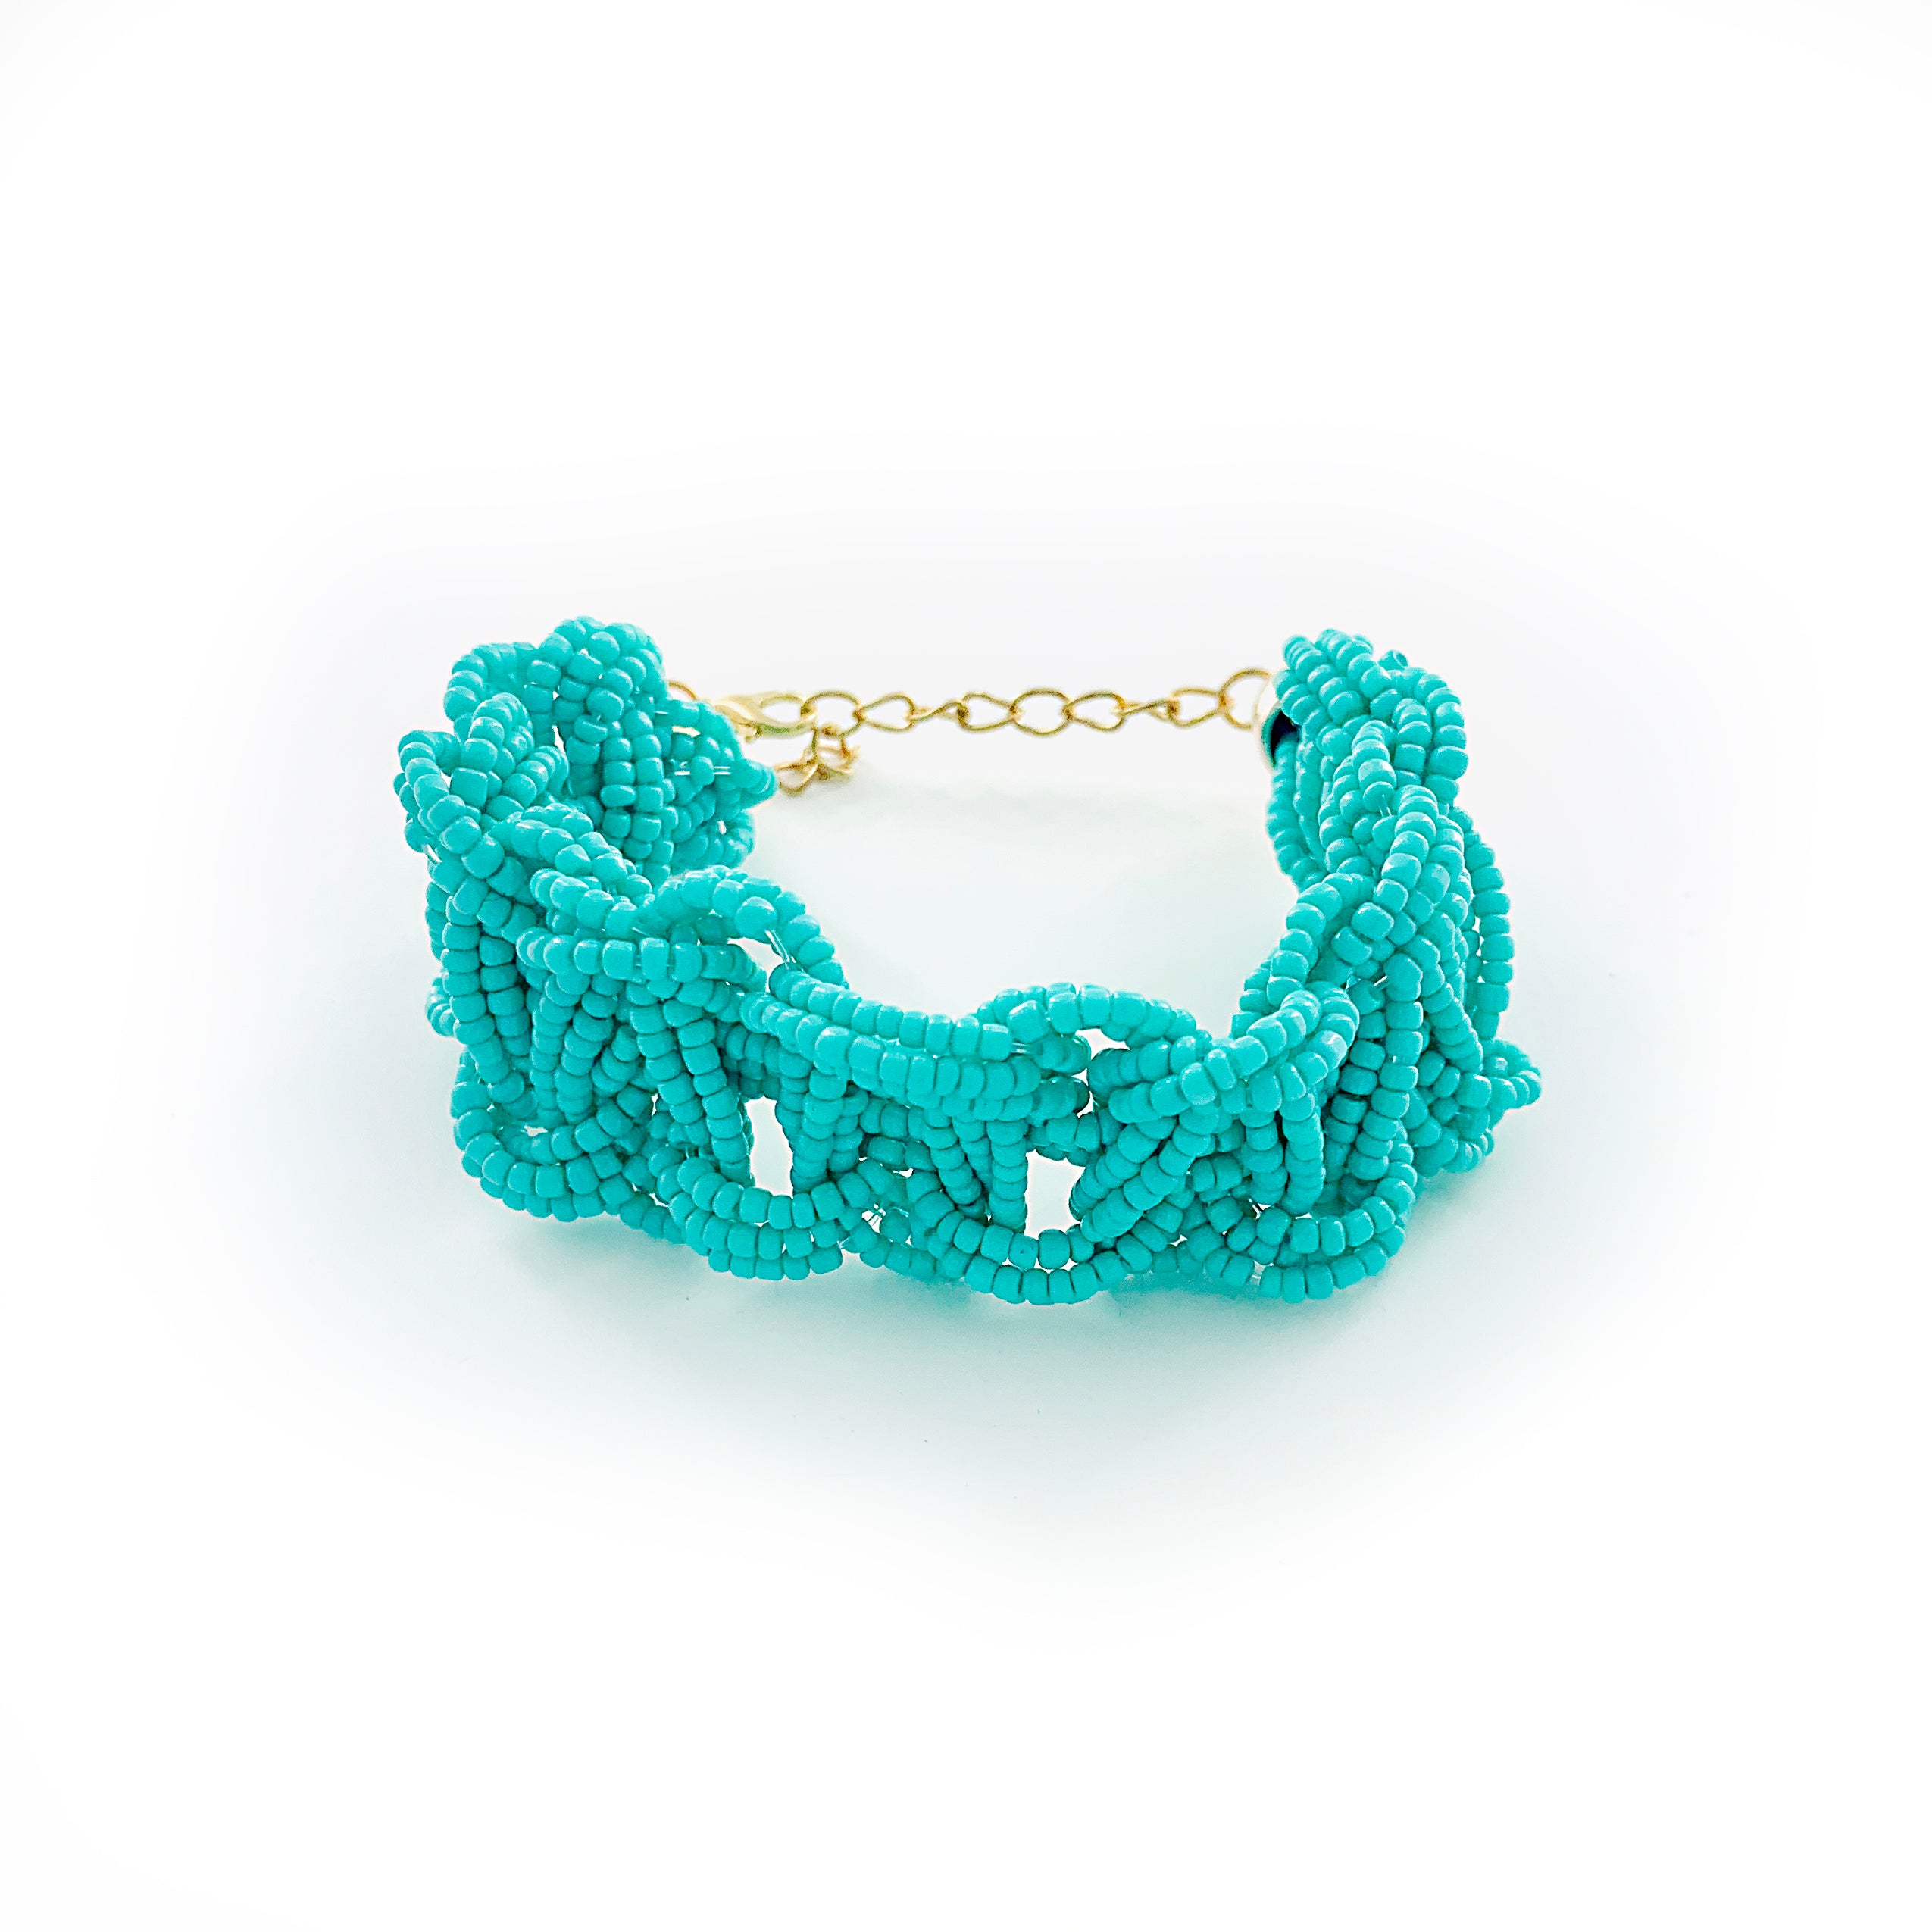 Turquoise braided bracelet with chain clasp